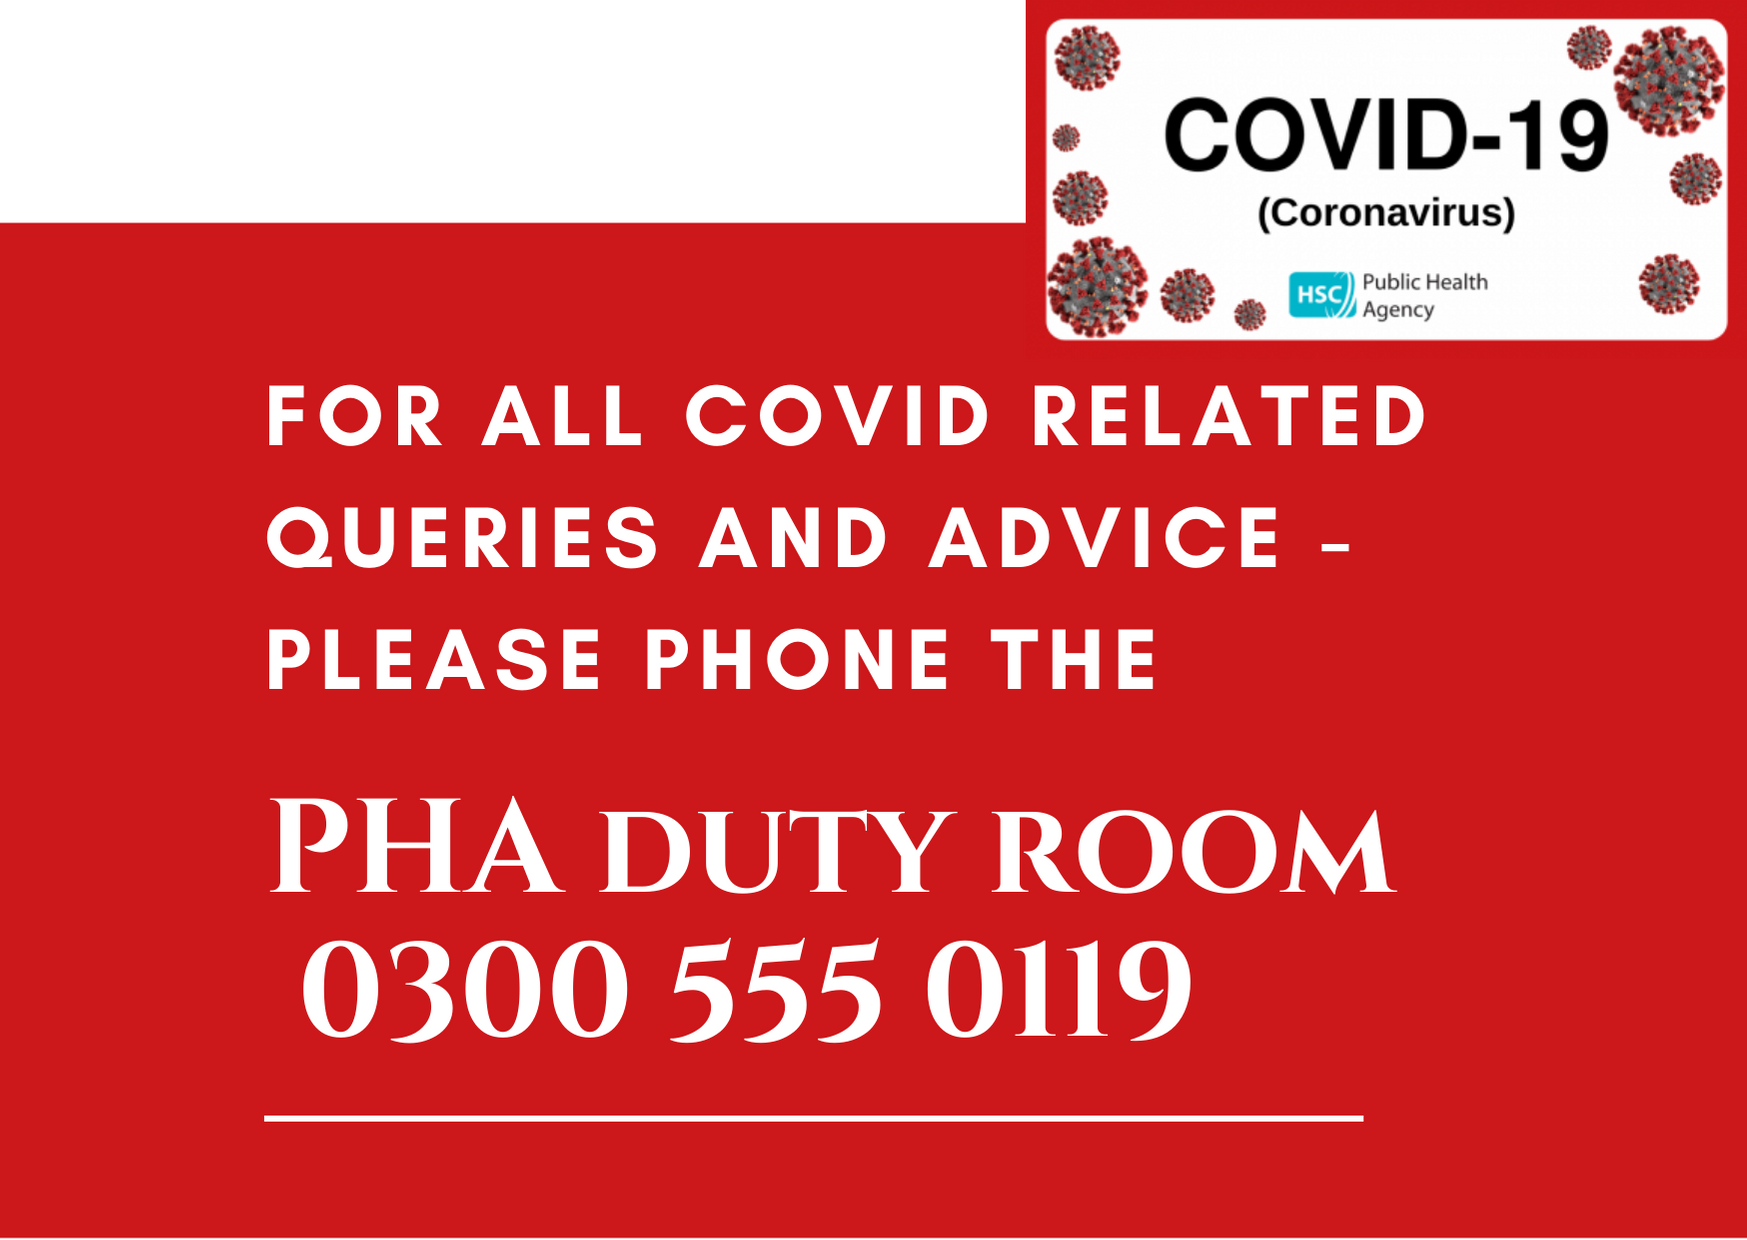 Pharmacy teams with COVID related queries should contact the PHA Duty Room 0300 555 0119